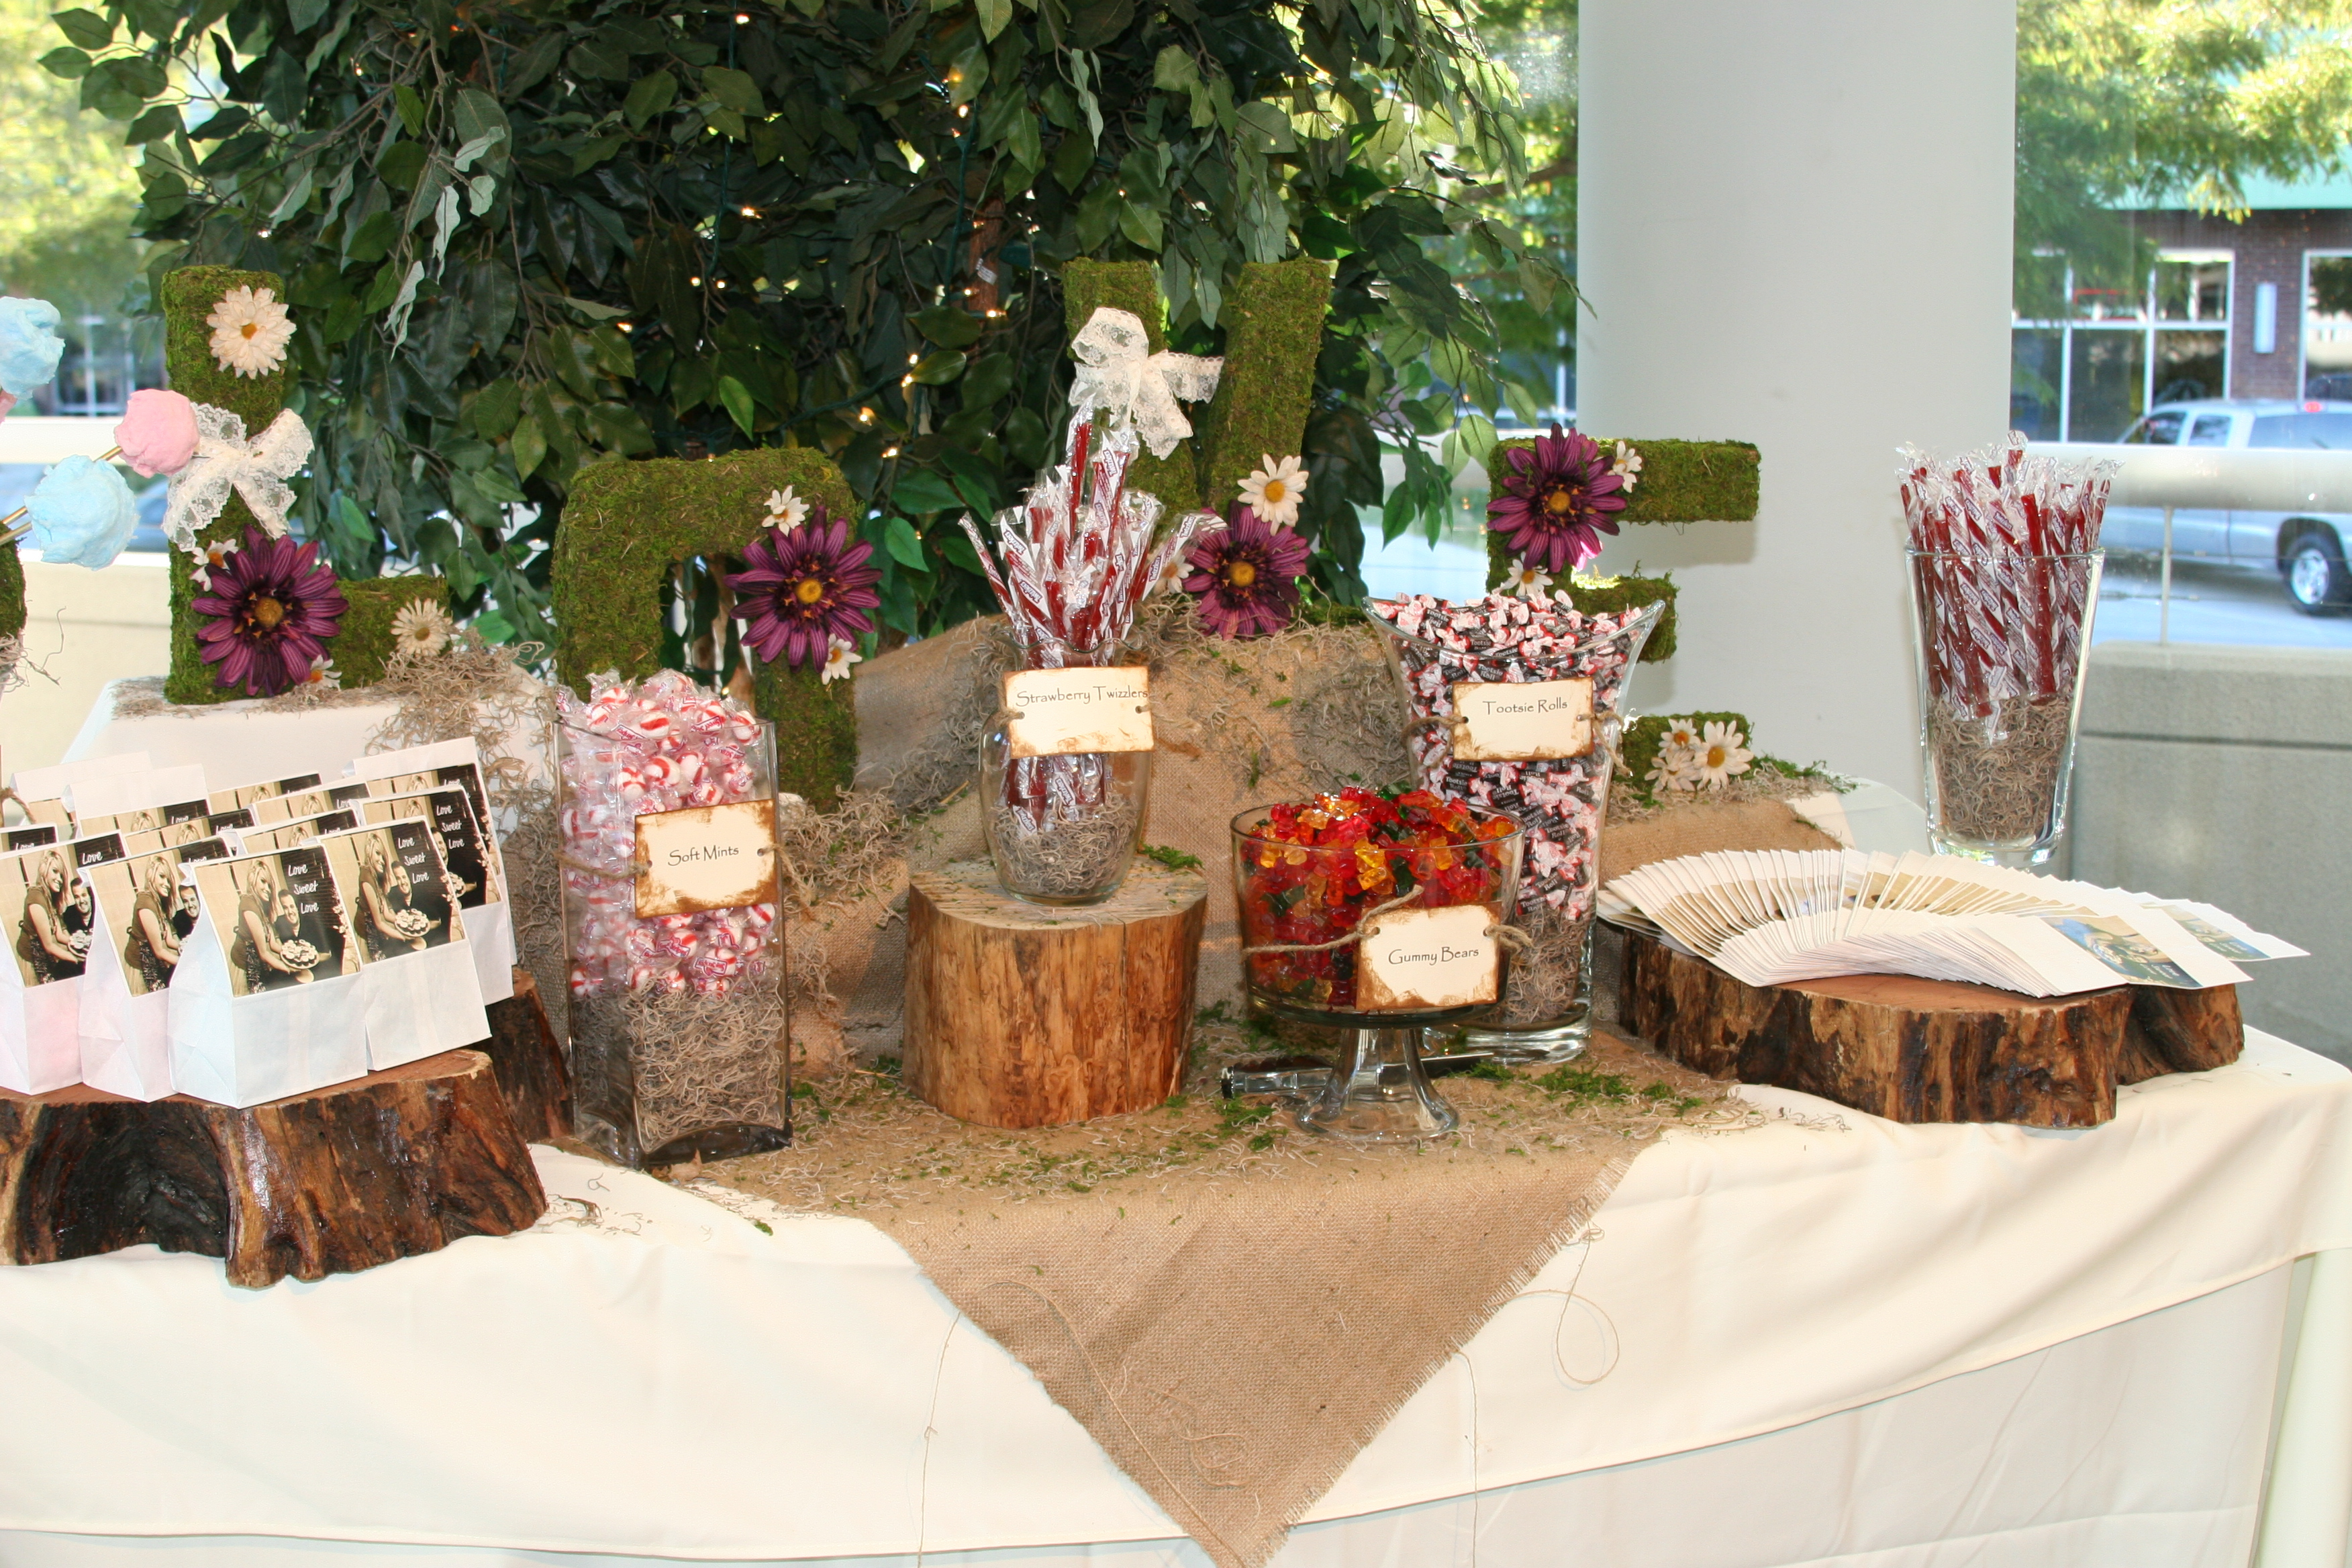 Reception, Flowers & Decor, Favors & Gifts, Cakes, green, brown, cake, Favors, Flowers, Candy, Buffet, Inspiration board, Cotton